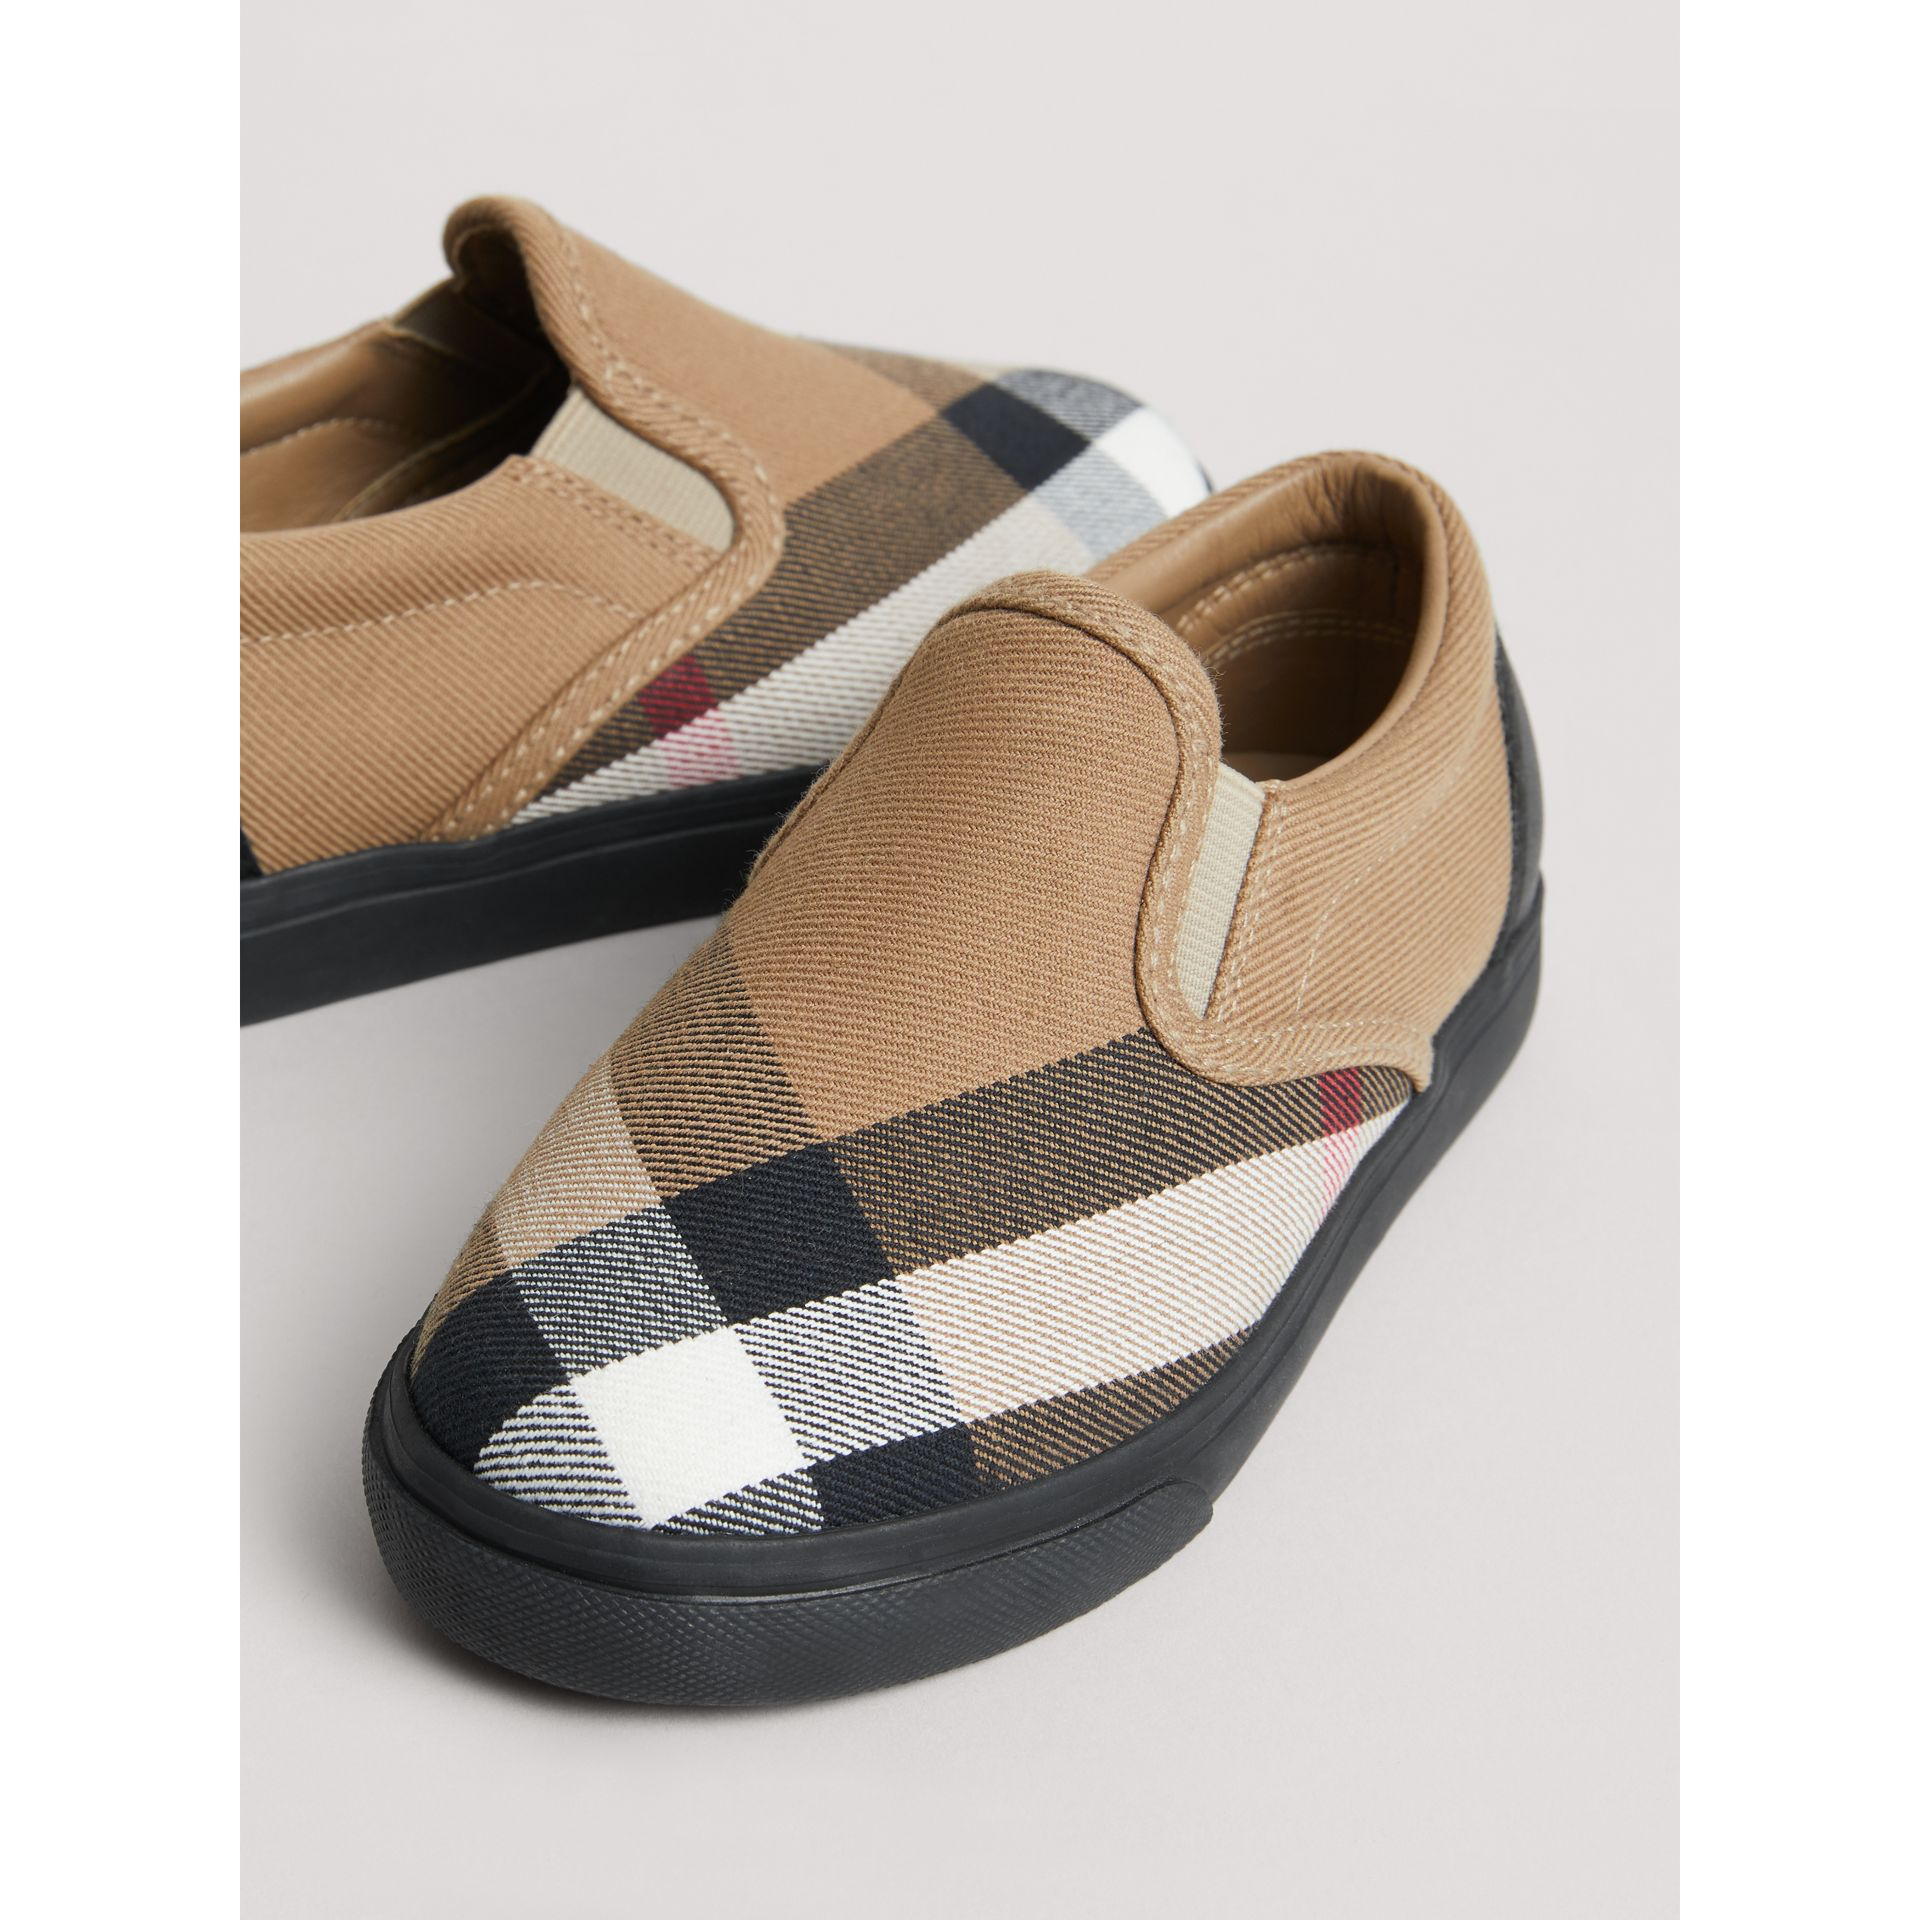 House Check and Leather Slip-on Sneakers in Classic/black | Burberry United Kingdom - gallery image 1